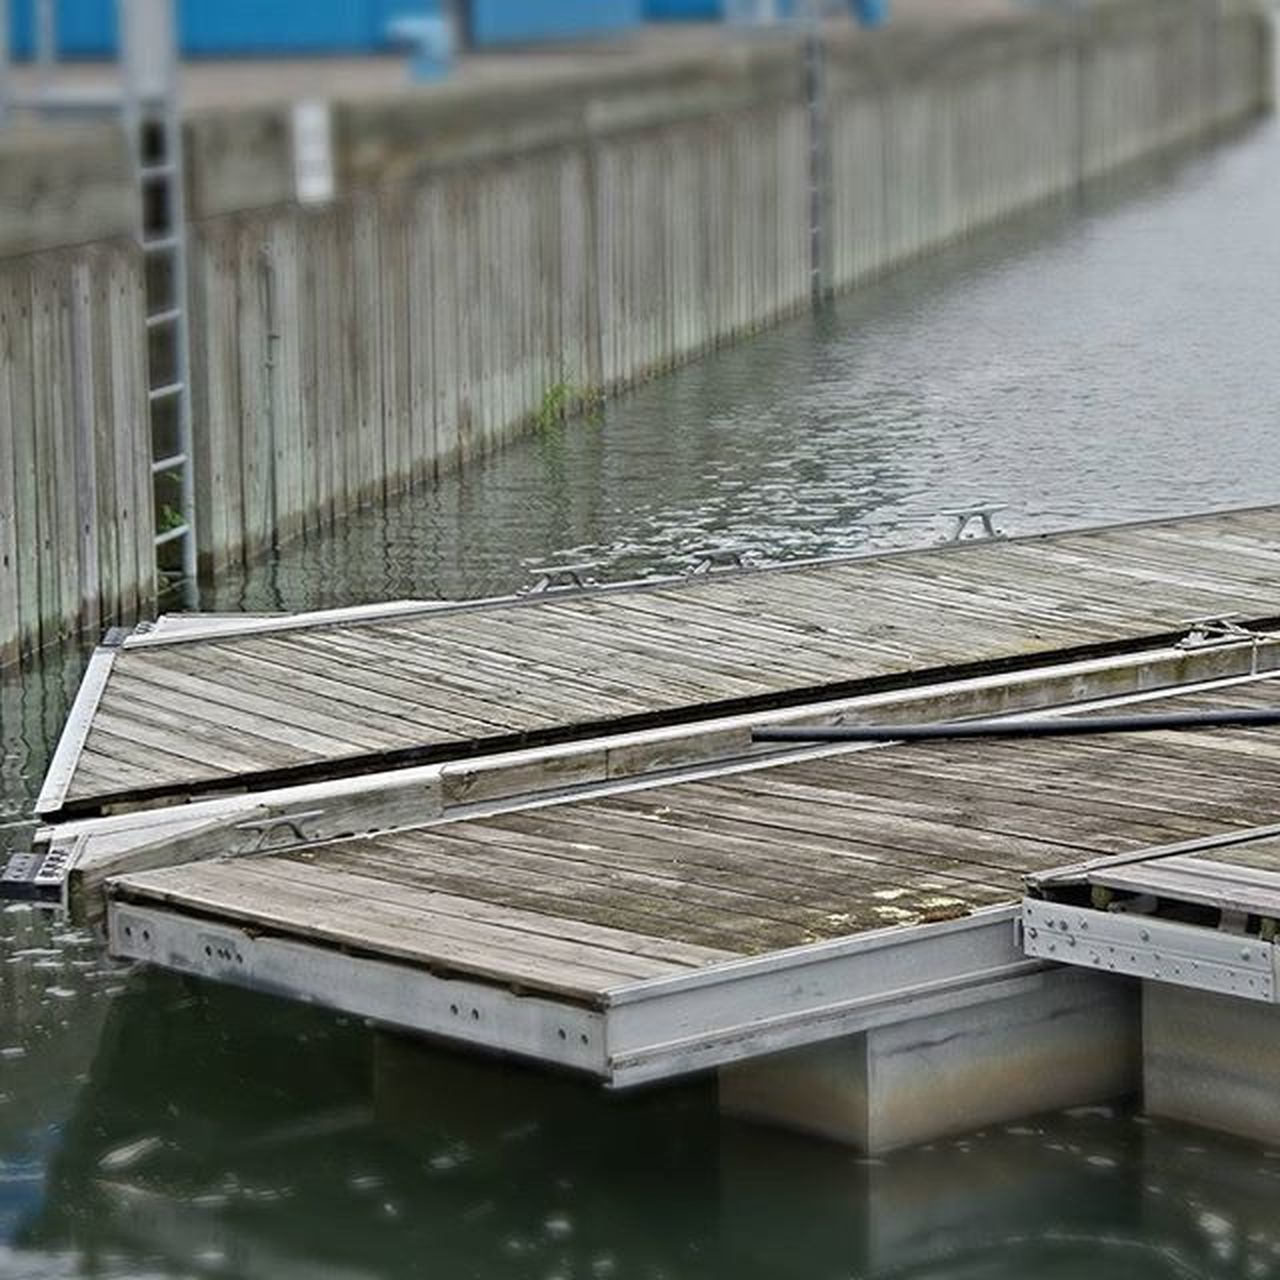 water, no people, day, waterfront, lake, outdoors, wood - material, nature, close-up